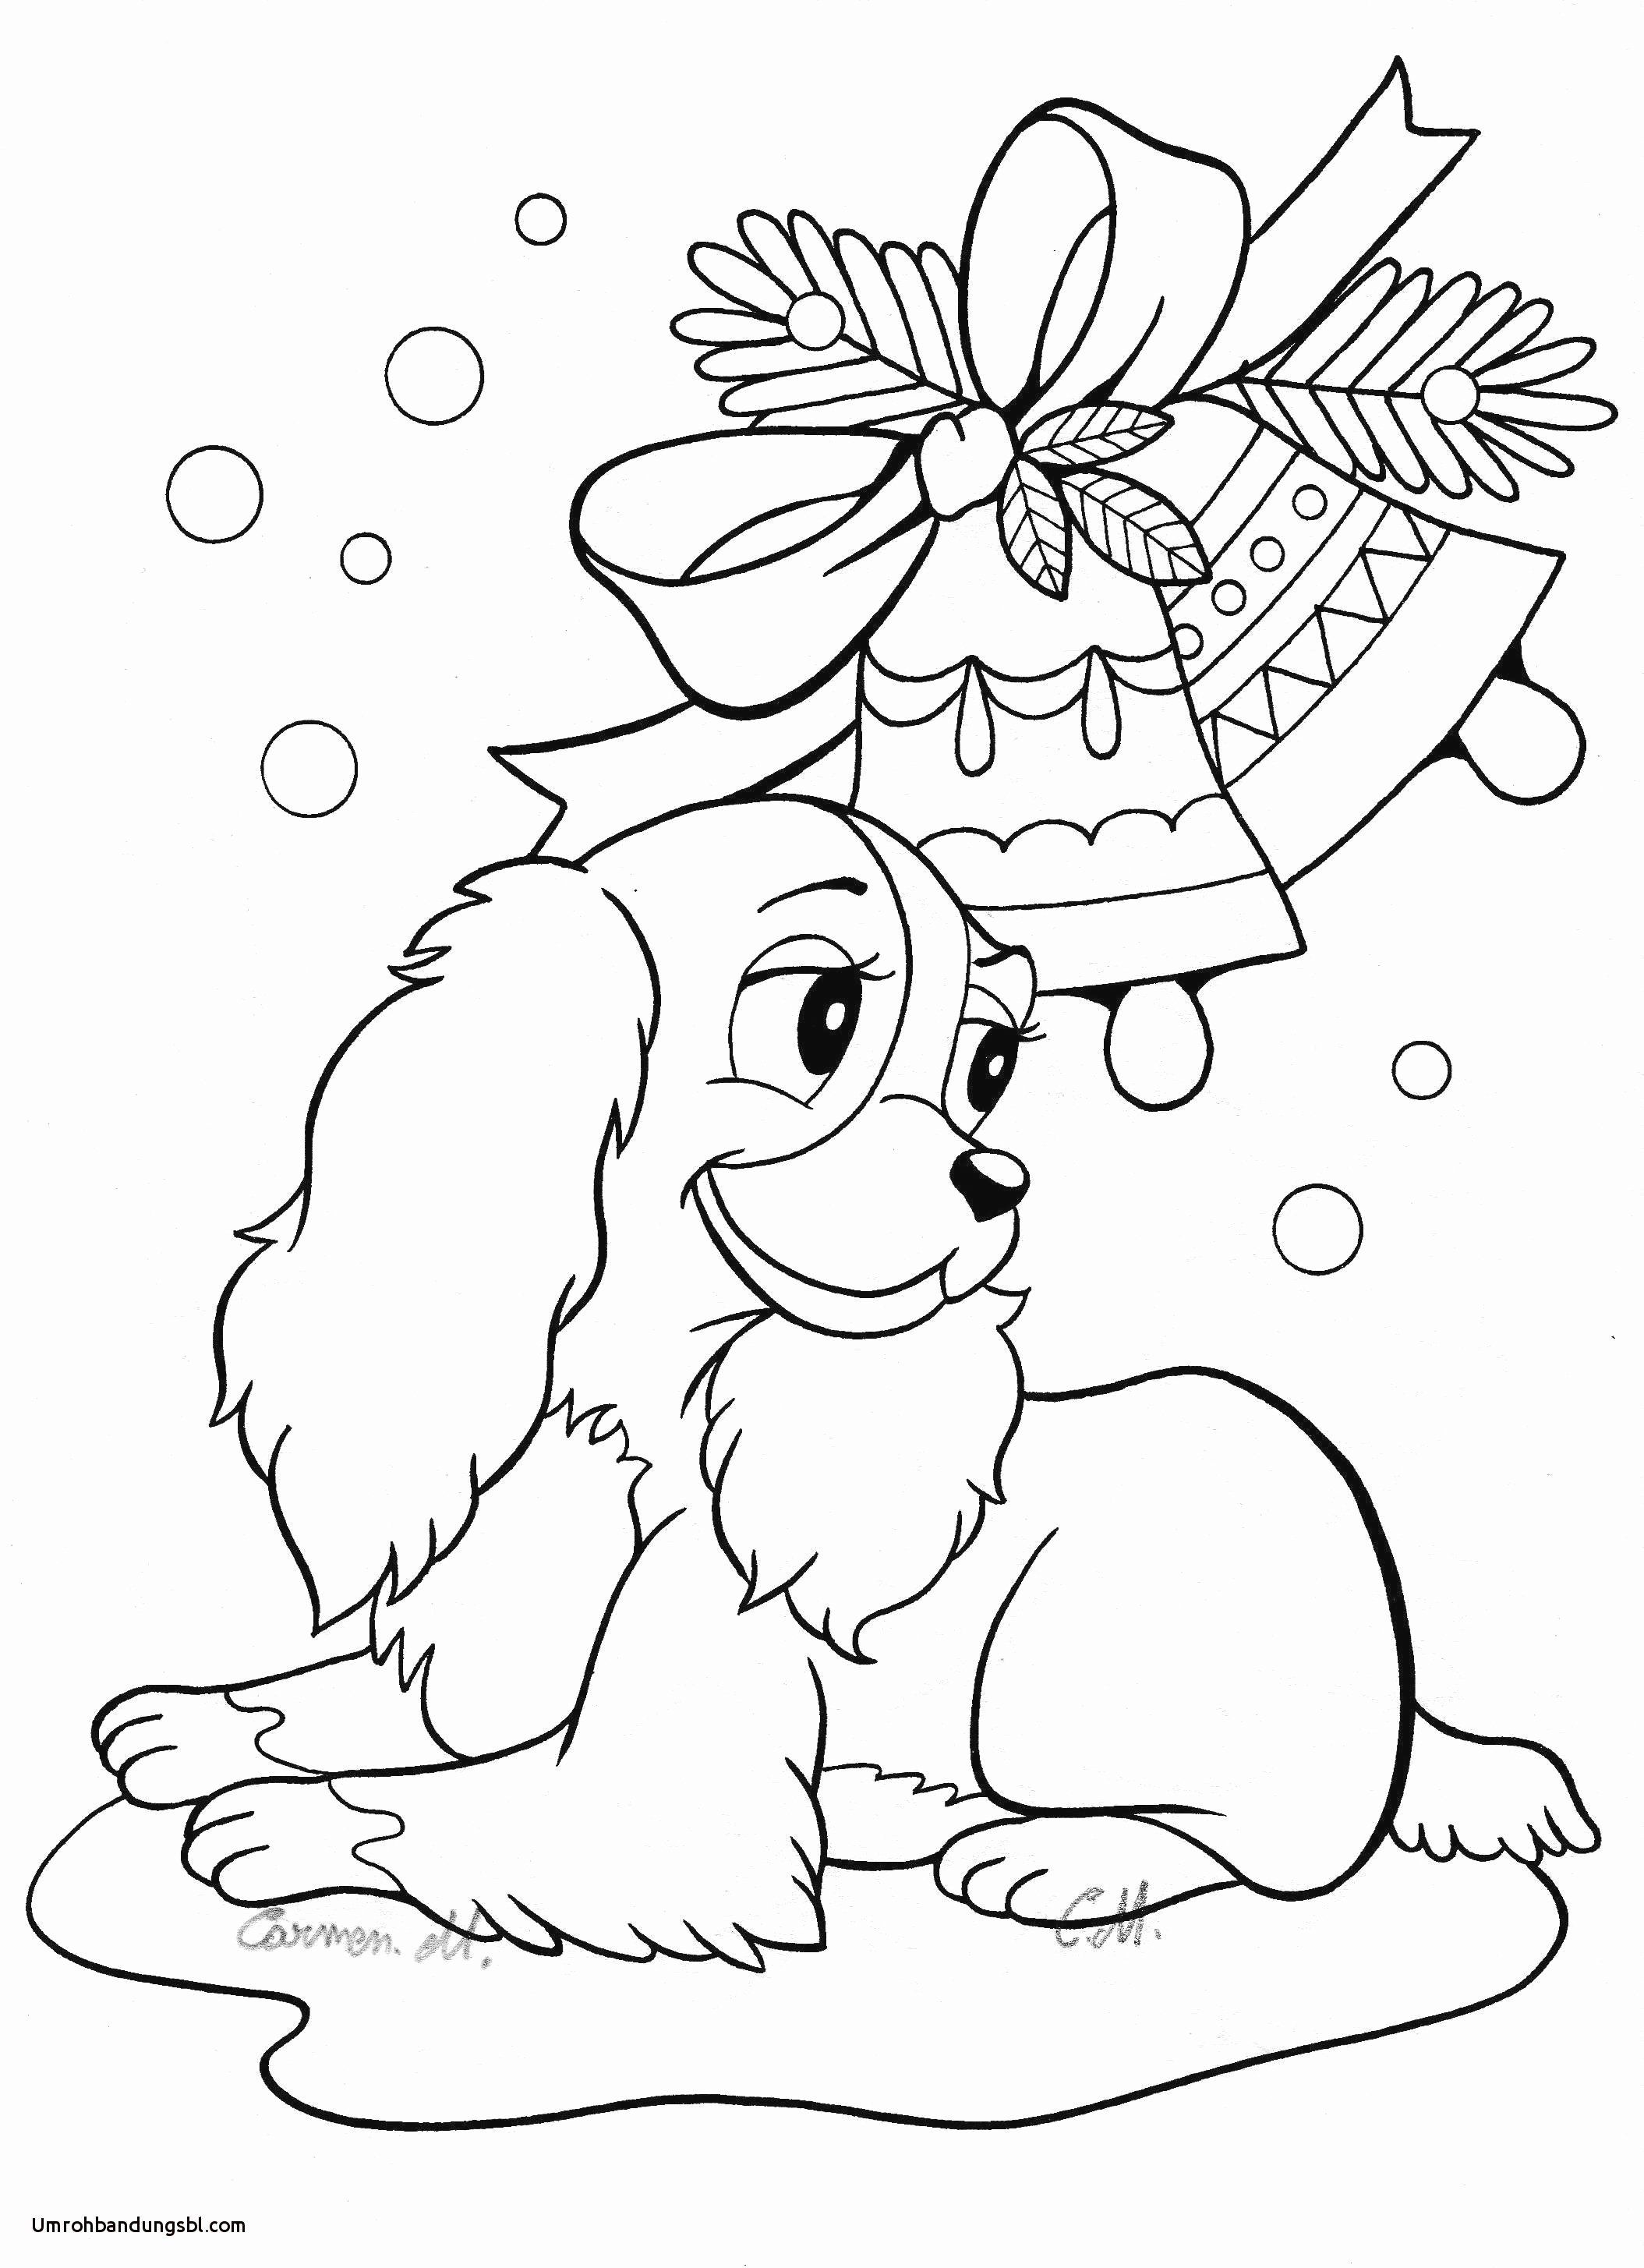 Holiday Coloring Sheets Free In 2020 With Images Printable Christmas Coloring Pages Animal Coloring Pages Halloween Coloring Pages